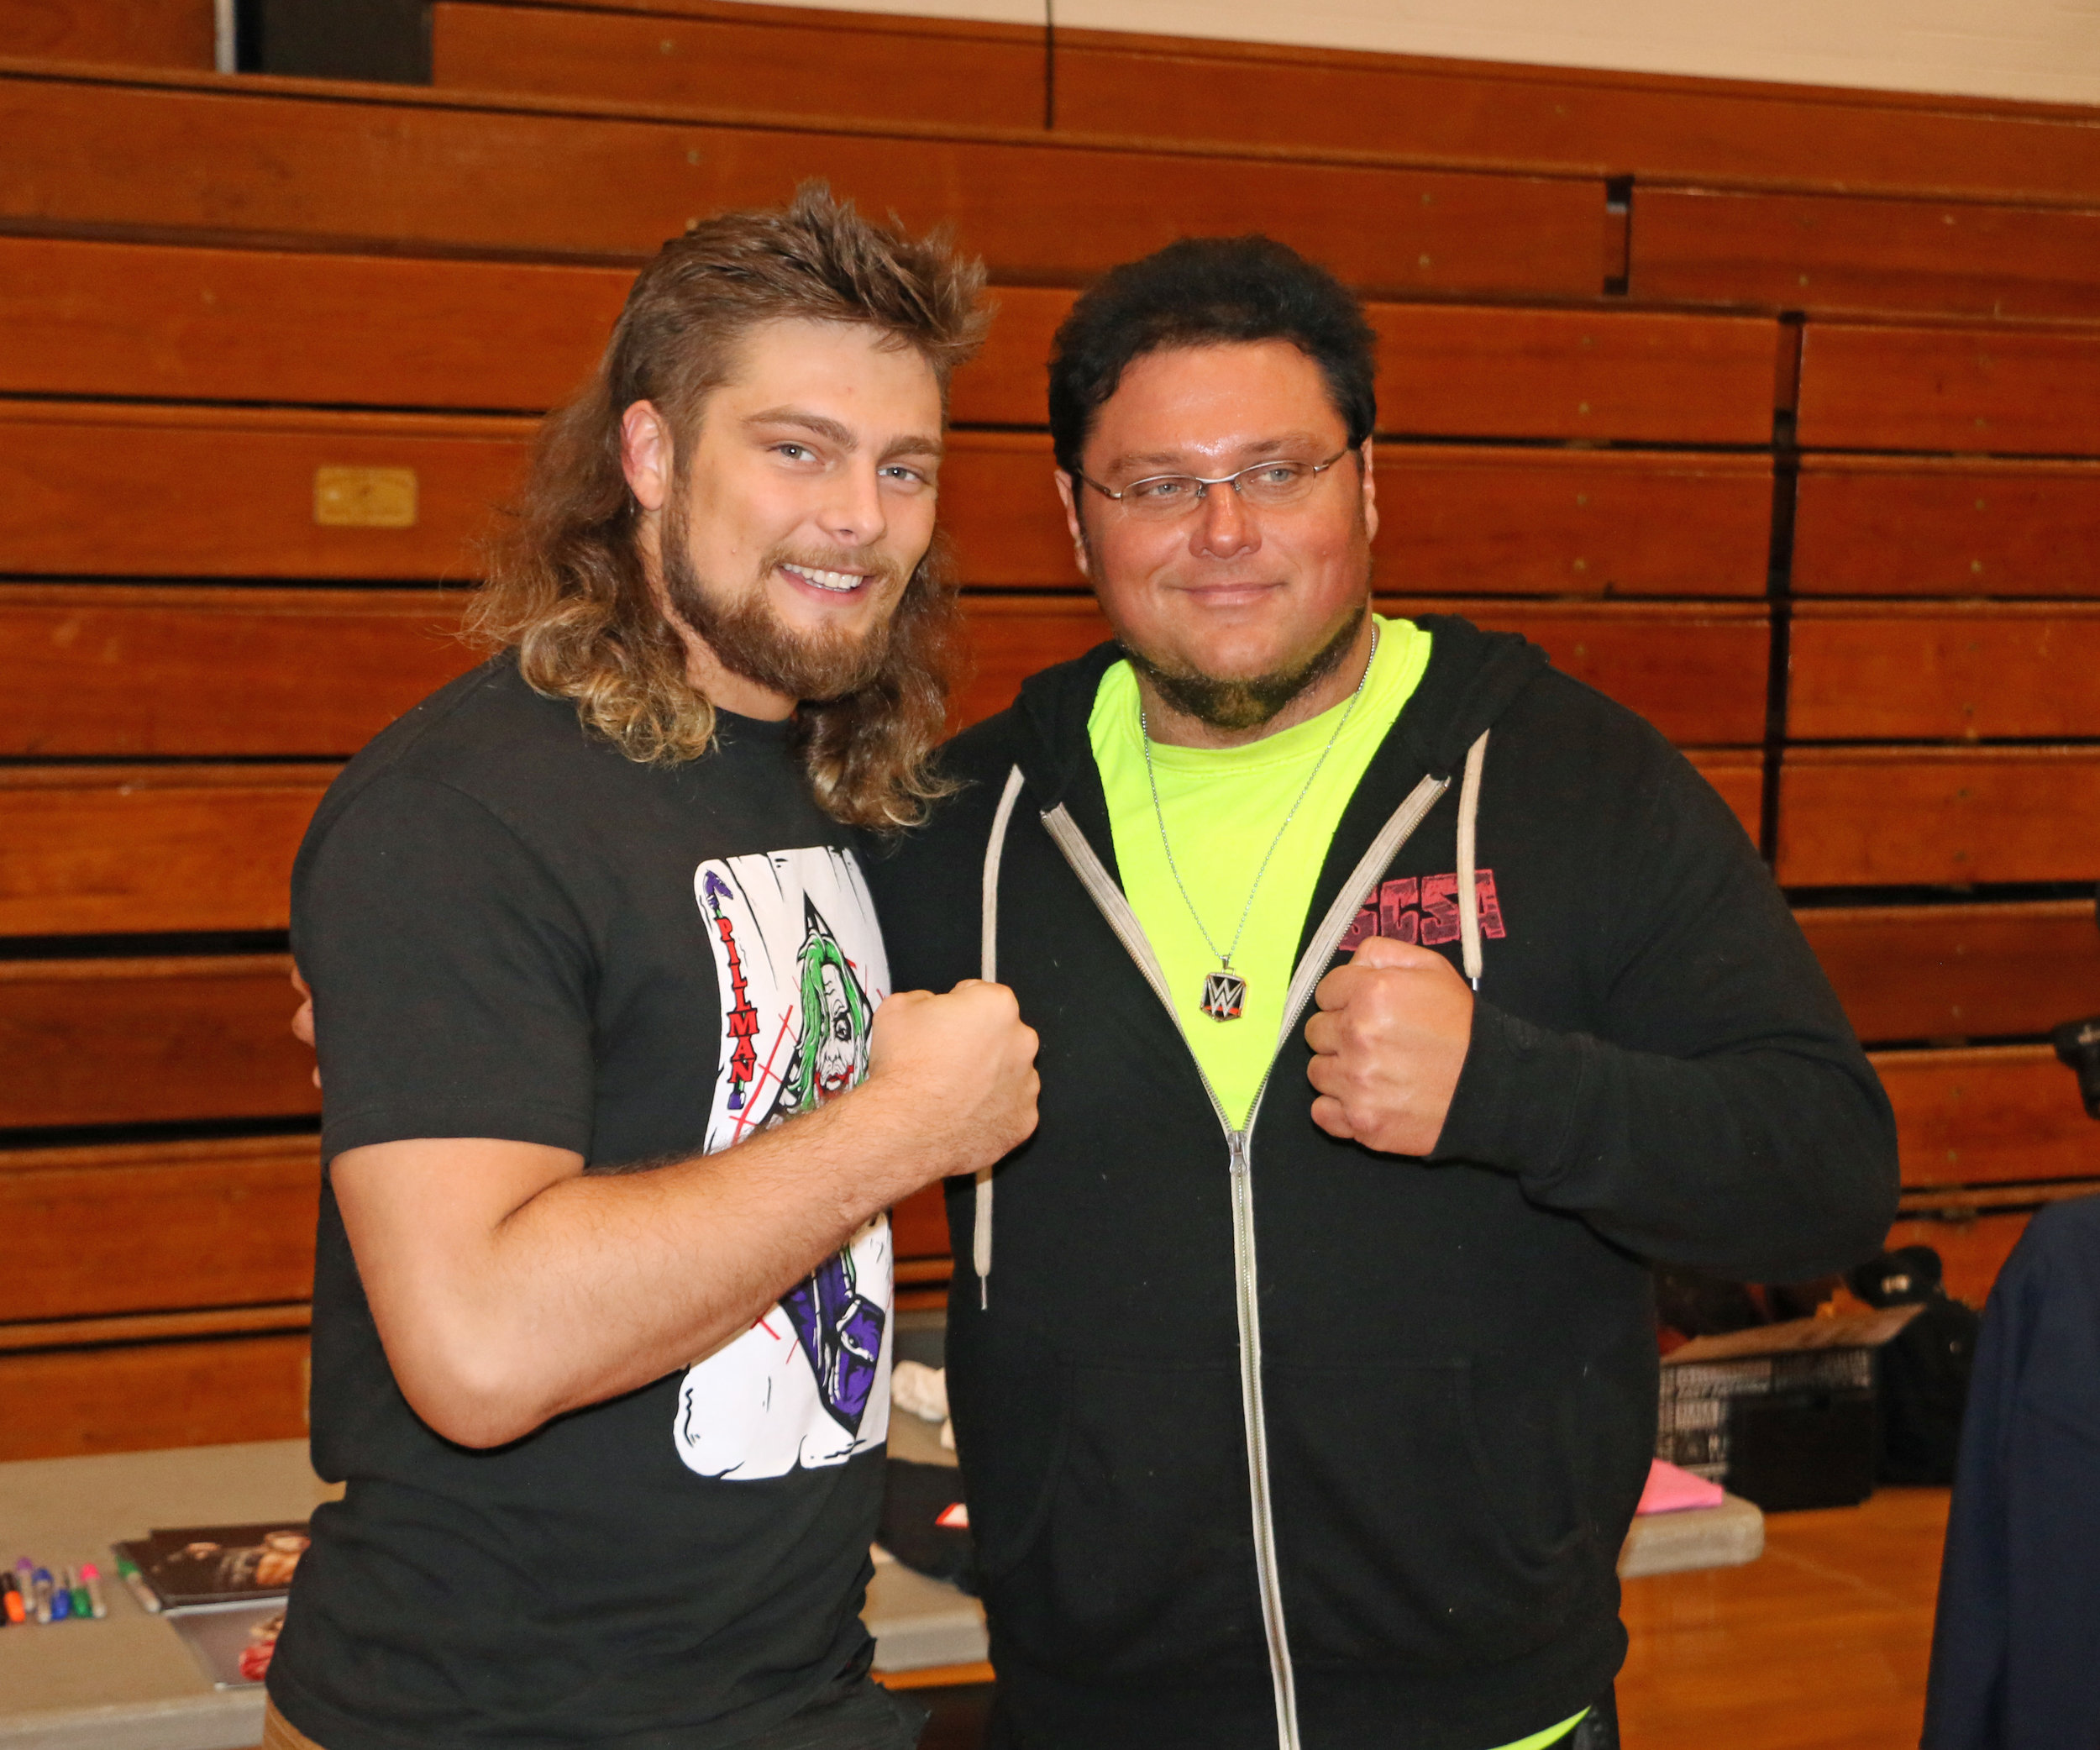 Brian Pillman Jr. poses with a fan during the Warrior Wrestling 5 VIP Fan Fest.